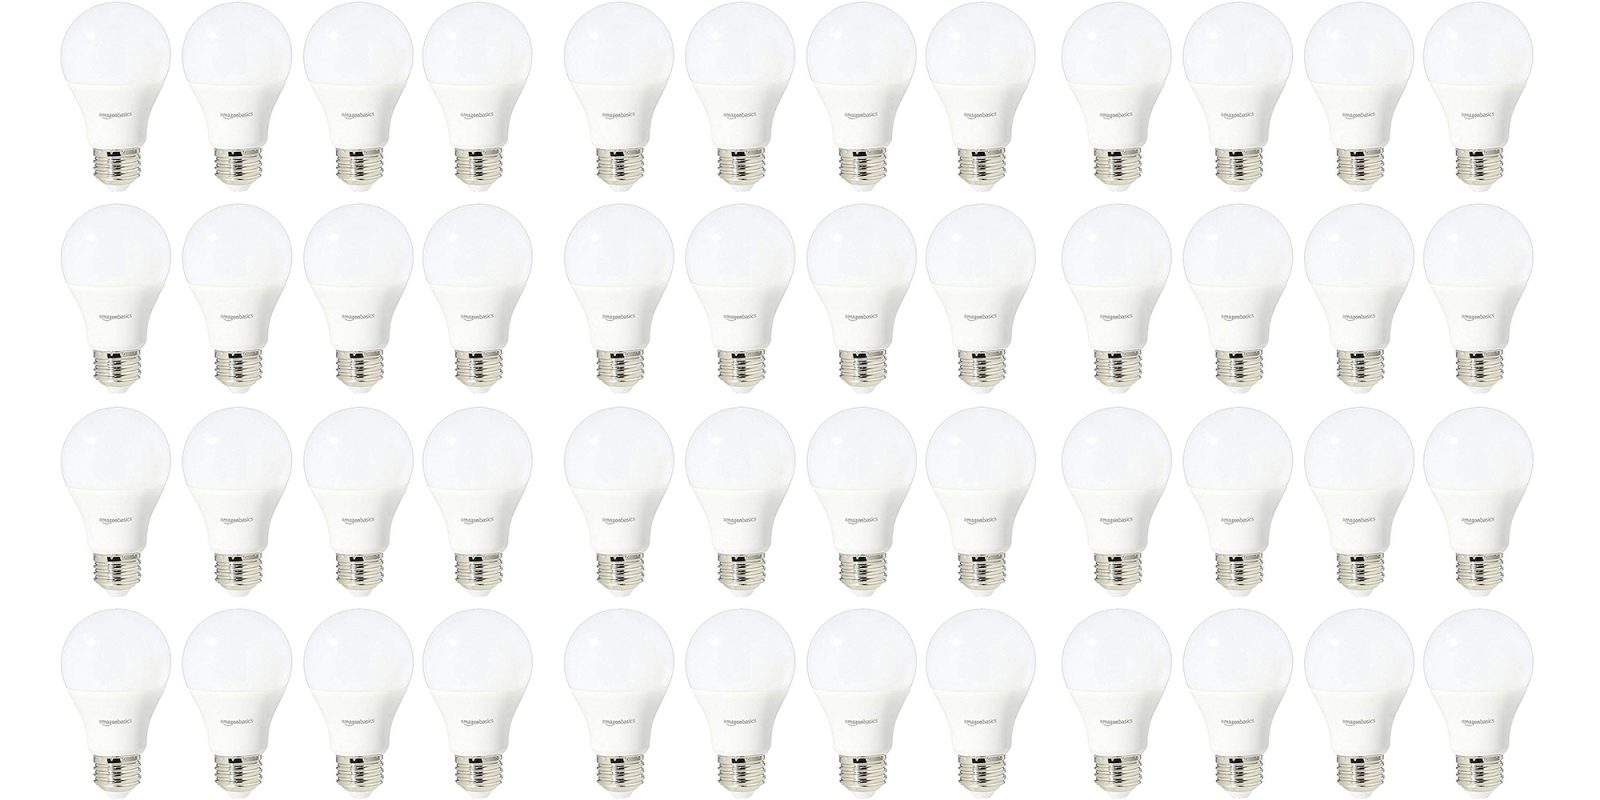 Pick up 16 dimmable LED light bulbs for $20 and more in today's Green Deals